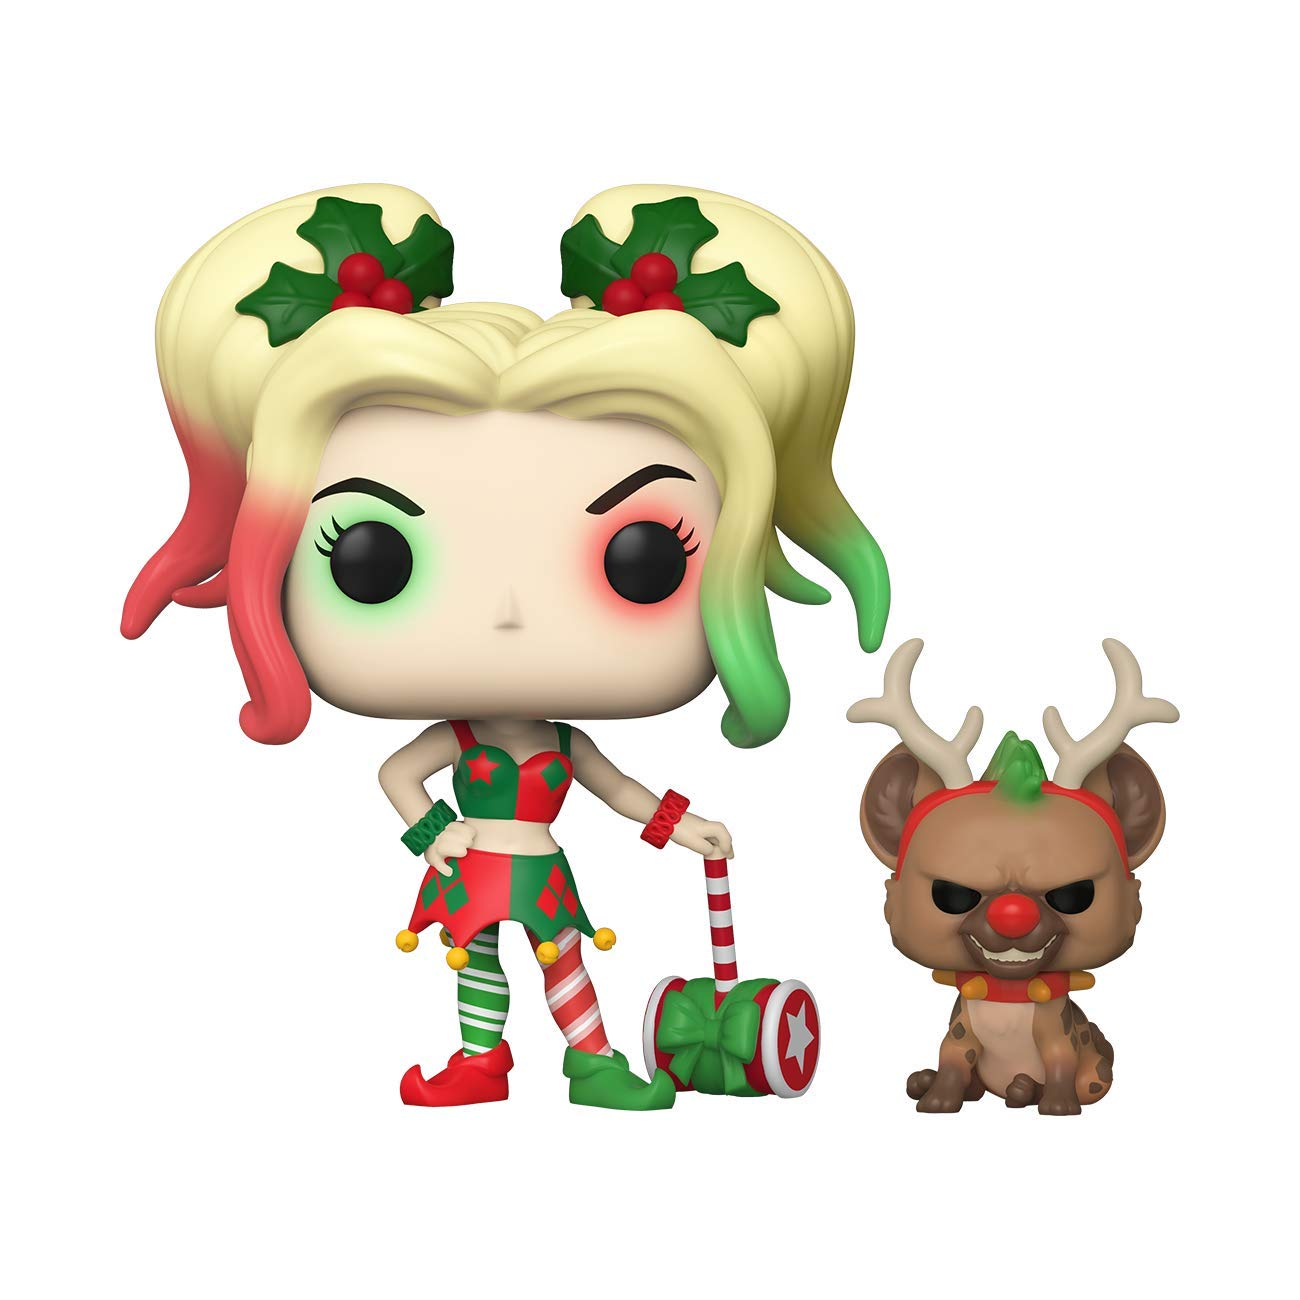 Funko Pop! DC Heroes: DC Holiday - Harley Quinn with Helper, Multicolor, 3.75 inches (50656)